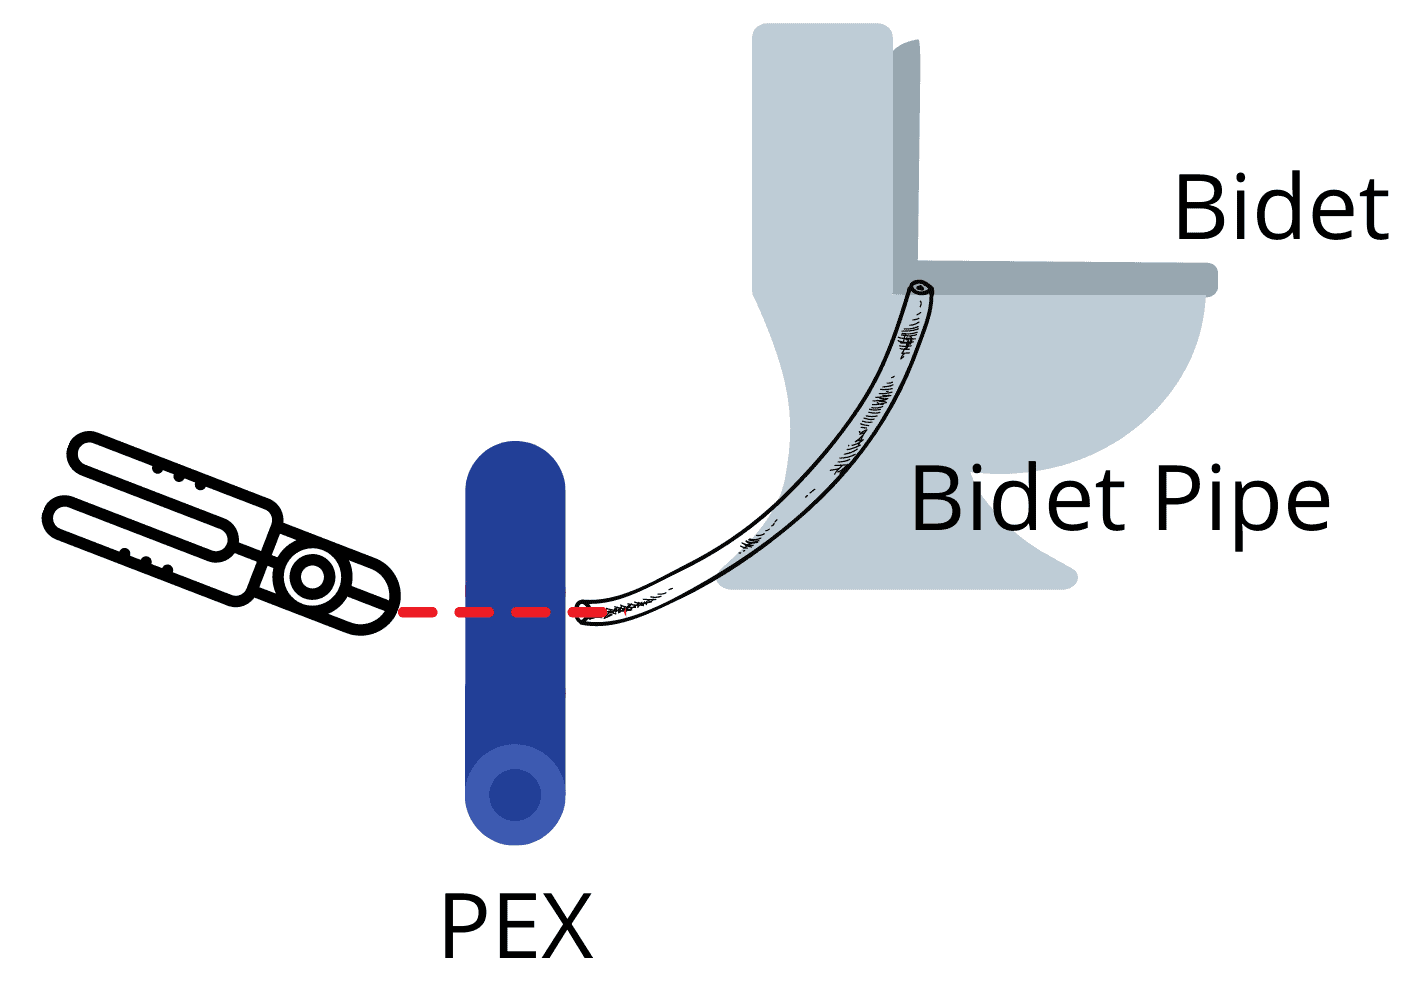 Picture of bidet pipe being lined up with a pex pipe